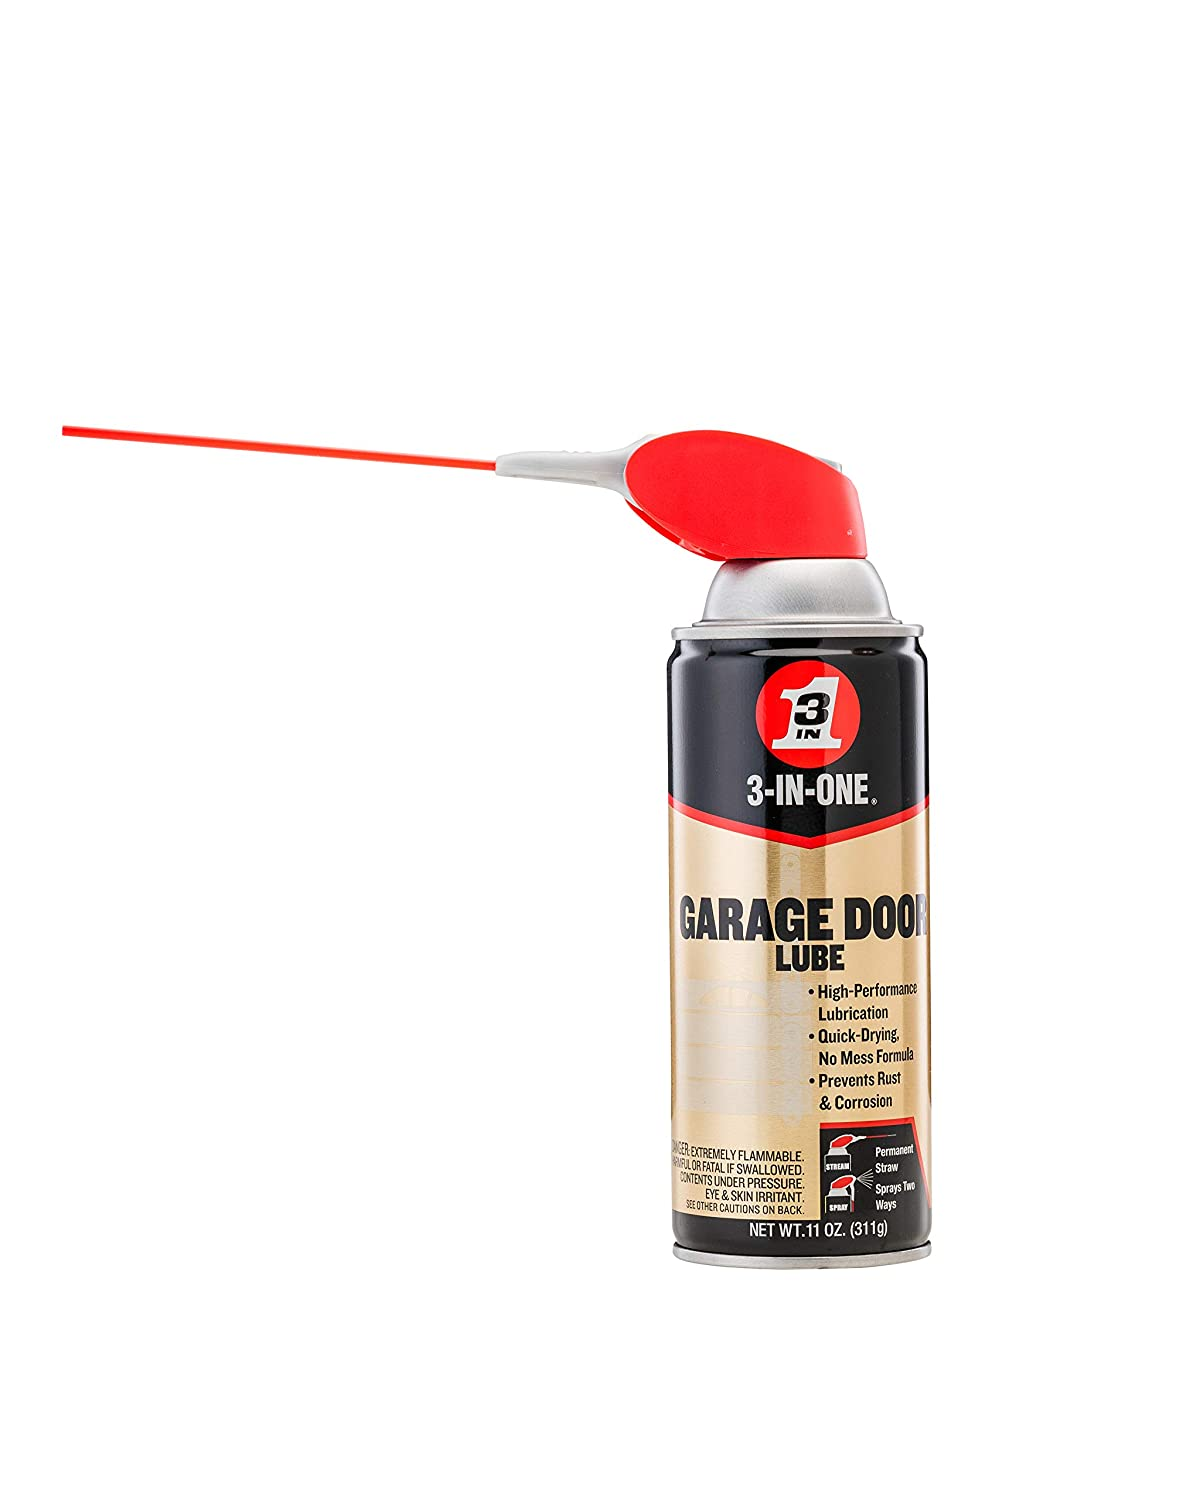 3-IN-ONE Professional Garage Door Lubricant with Smart Straw